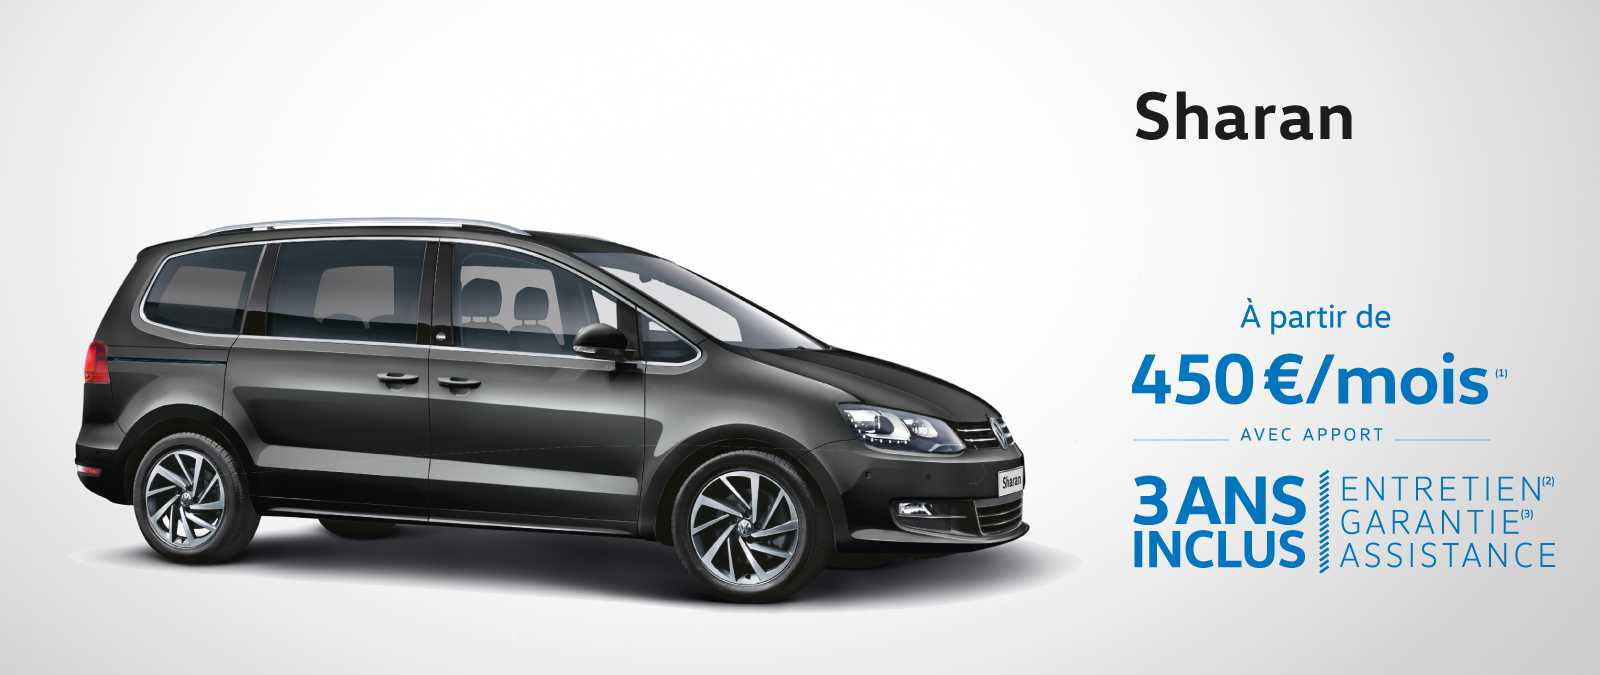 Offres particuliers blet rouen grand quevilly garage volkswagen rouen grand quevilly - Garage citroen grand quevilly ...